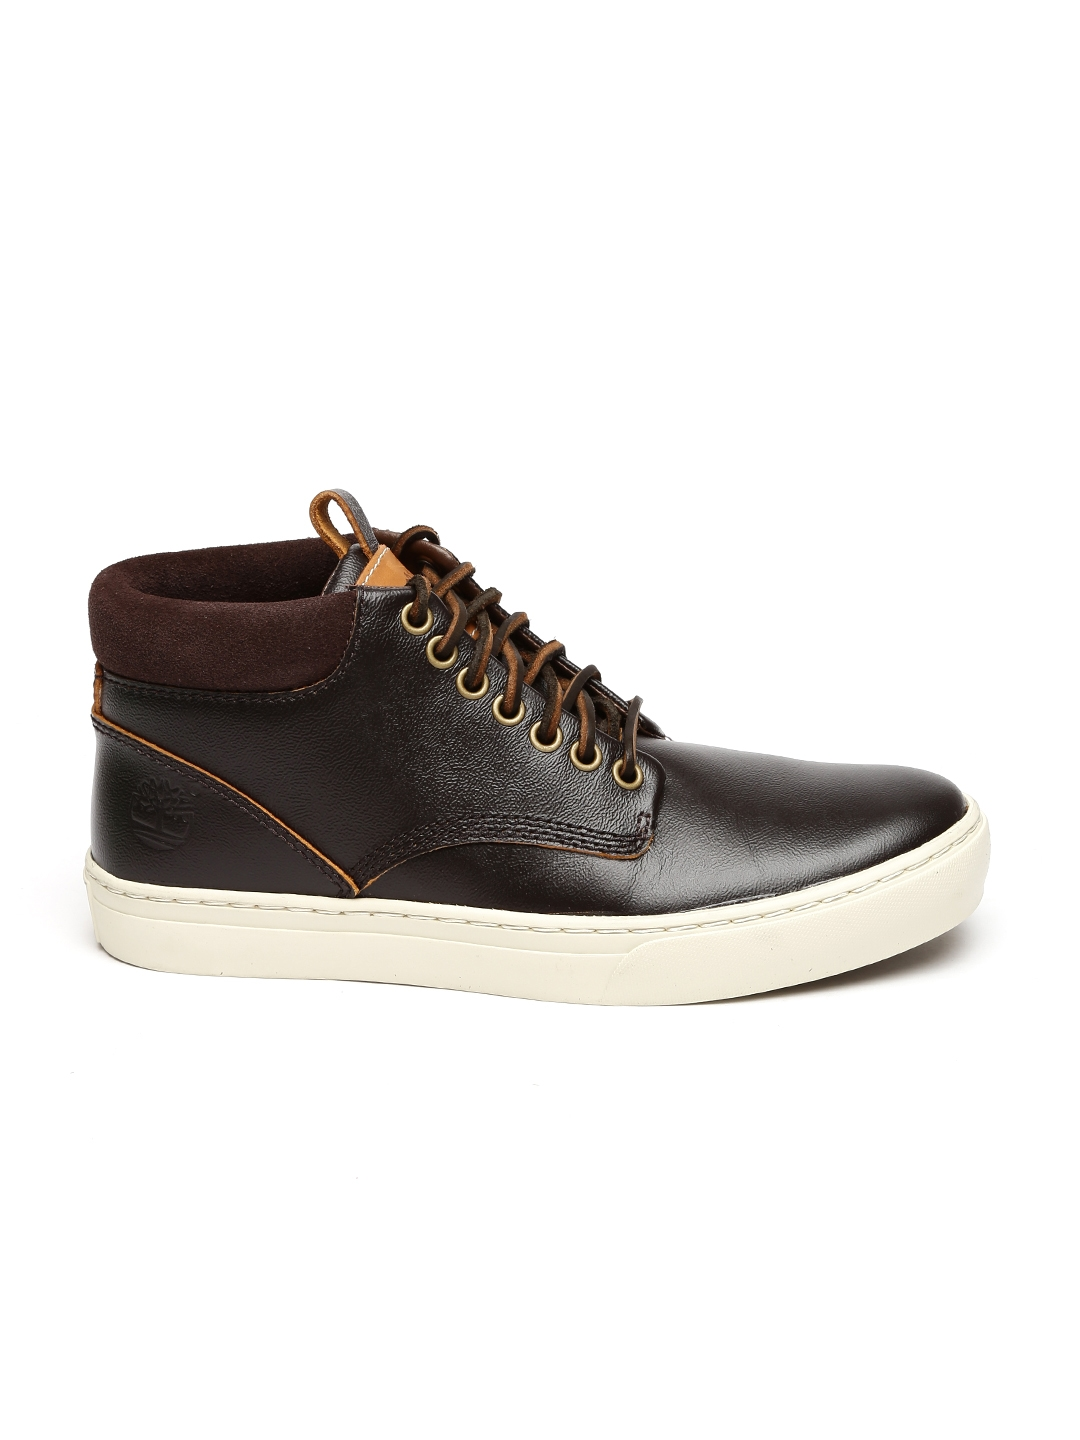 34ce1c7ee514 Buy Timberland Men Brown Solid Leather Adv 2.0 Sneakers - Casual ...